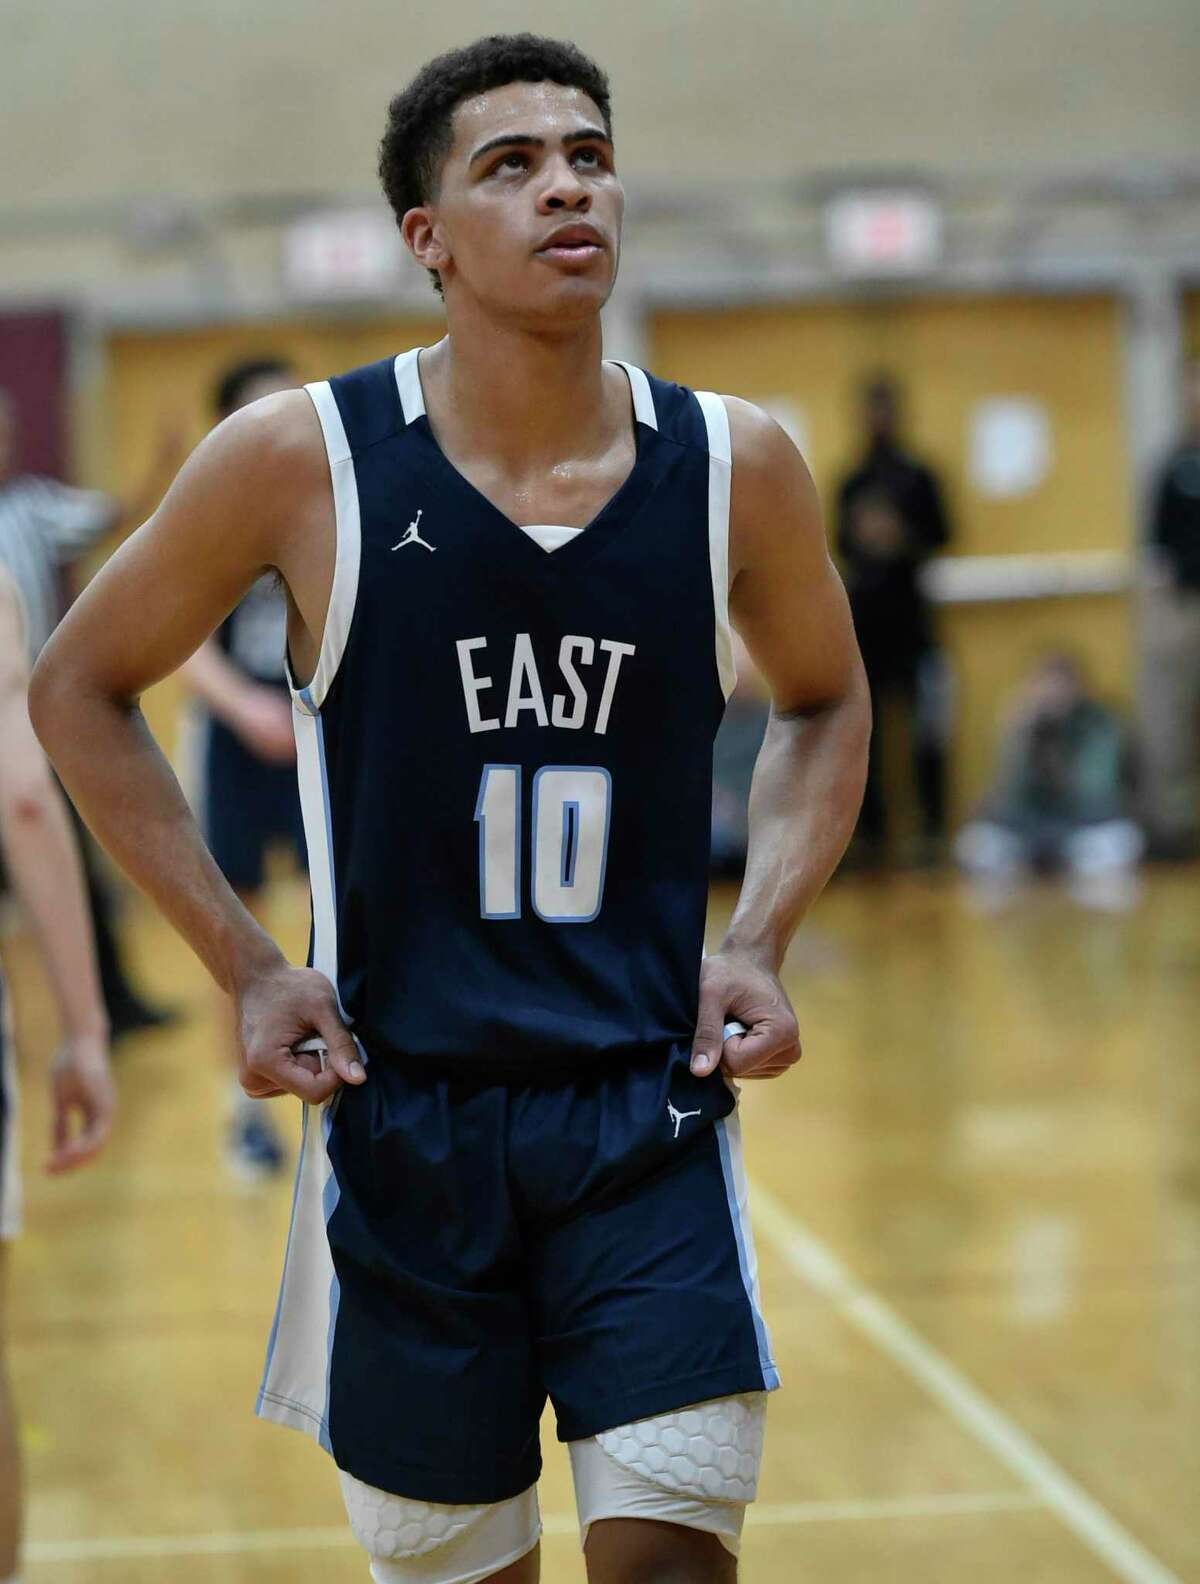 Windsor, Connecticut - January 28, 2020: Matt Knowling of East Catholic H.S. looks at the scoreboard during second quarter boys basketball Tuesday evening against Windsor H.S. at Windsor.. Final: #2 Windsor H.S. defeats #1 East Catholic H.S. 48-45.